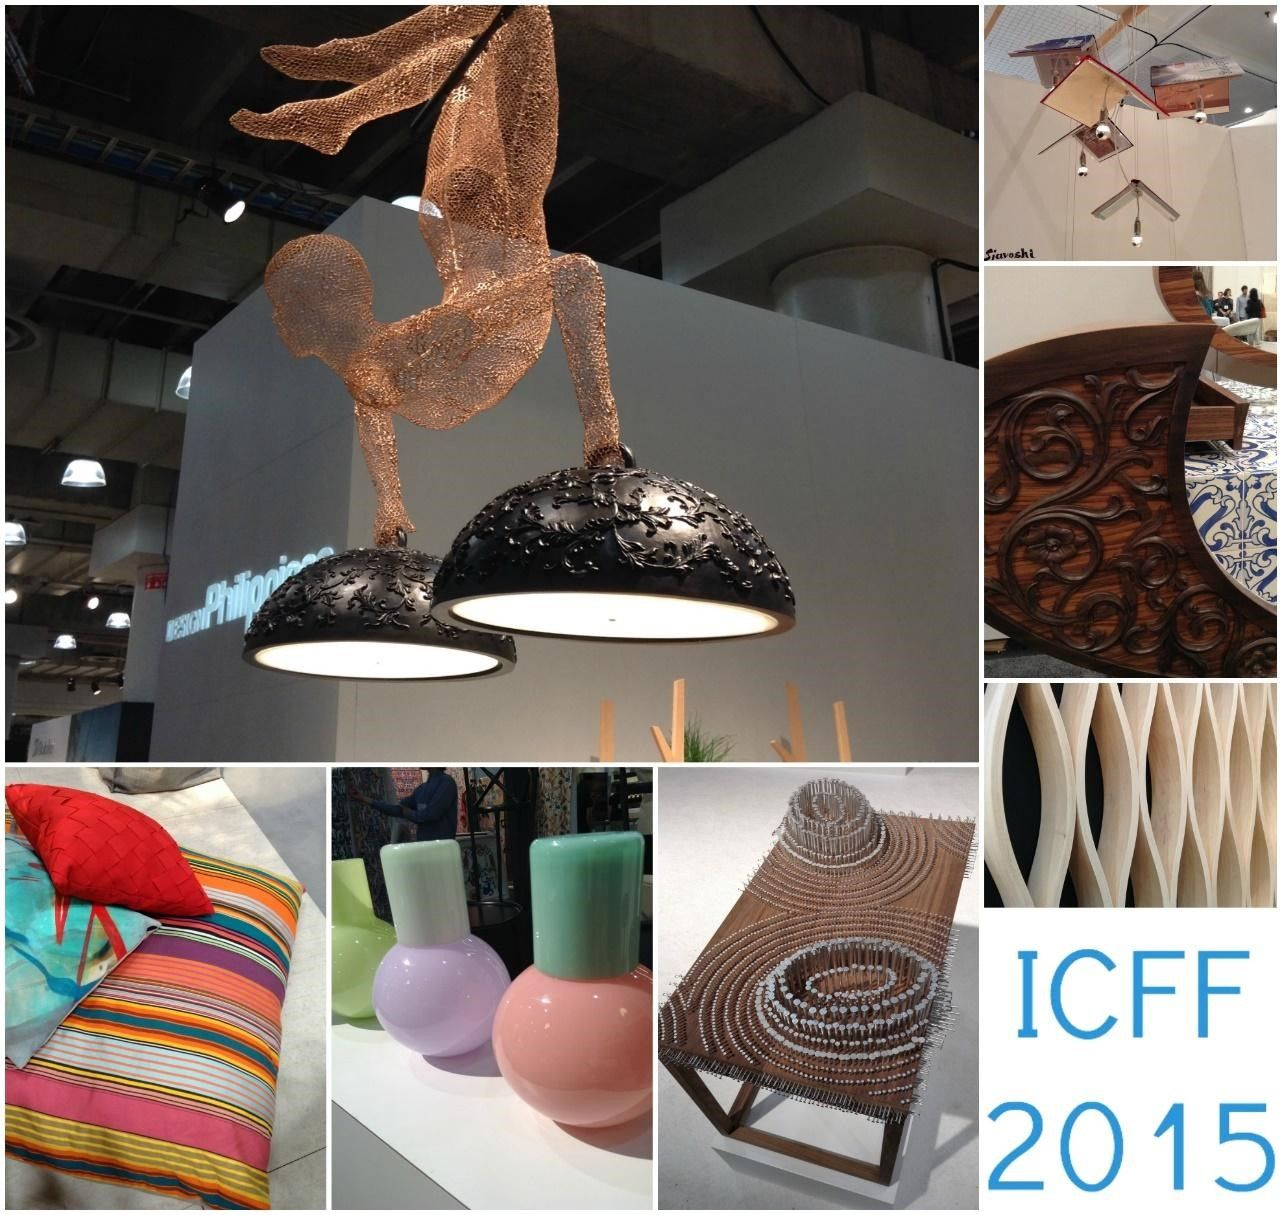 ICFF 2015 Through the Eyes of Our Intern... #ICFF2015 #interiordesign #inspiration #tradeshow #NYC